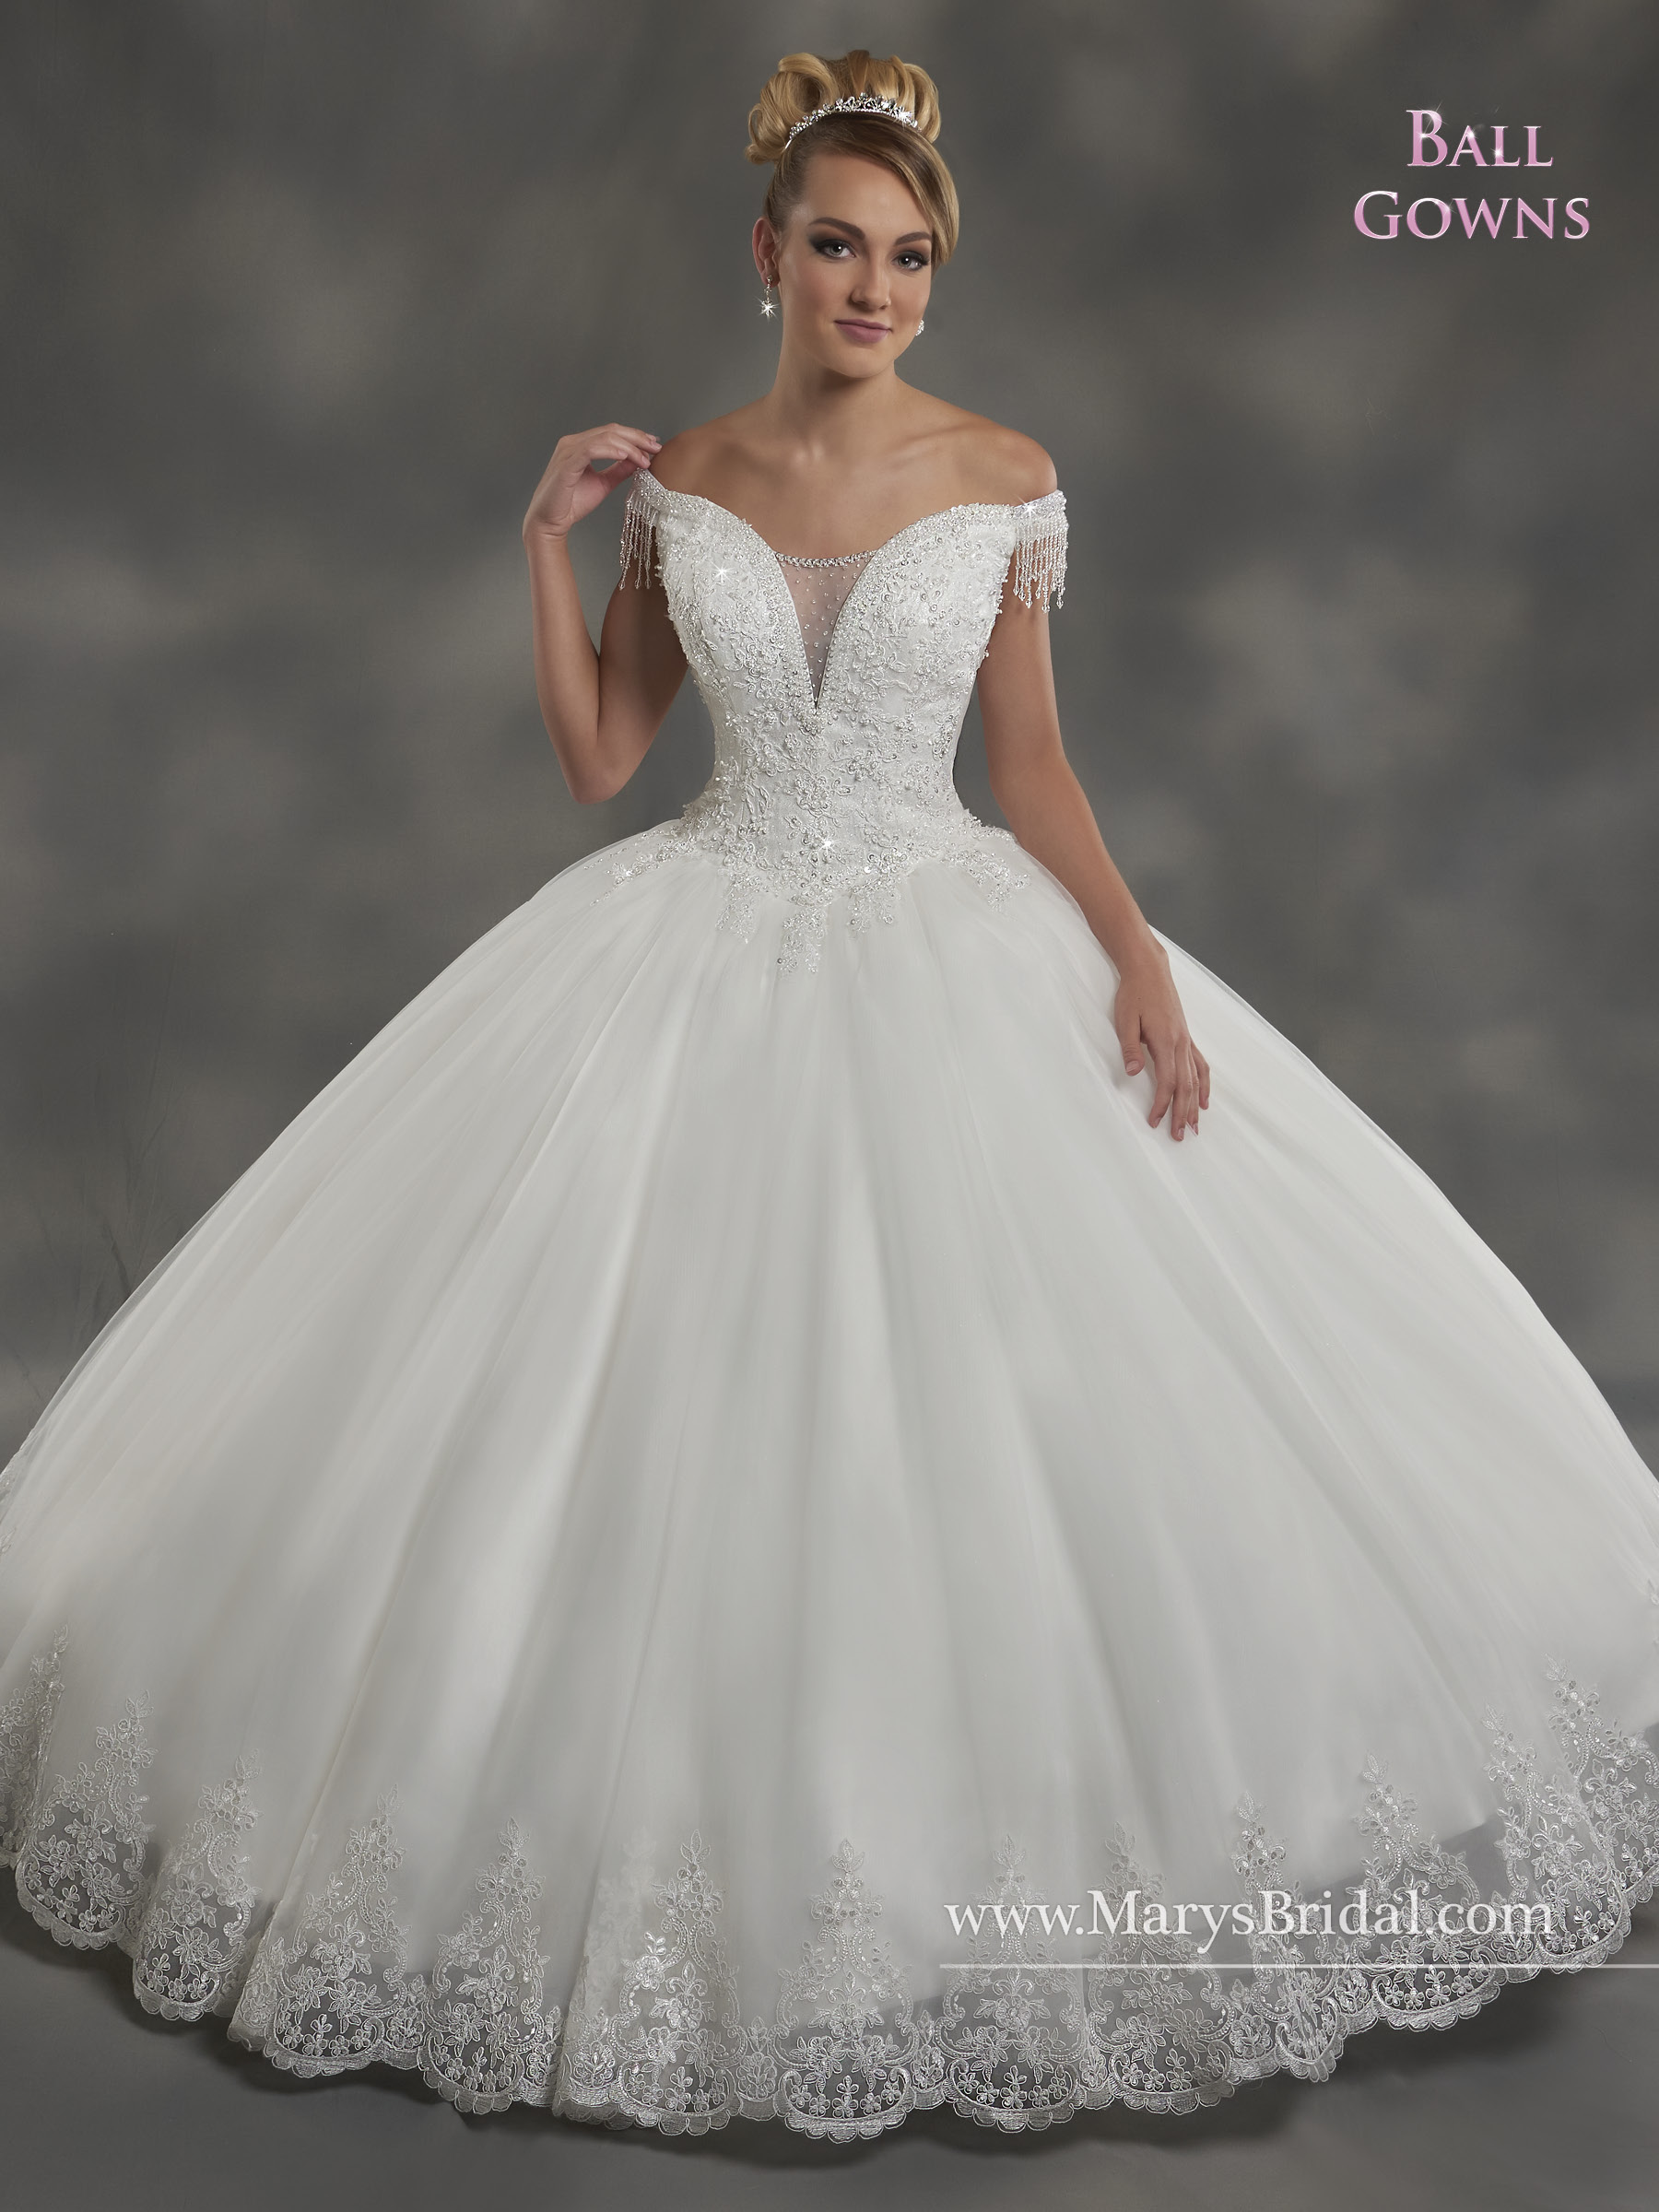 Bridal Ball Gowns Style 2b834 In Pink Or White Color